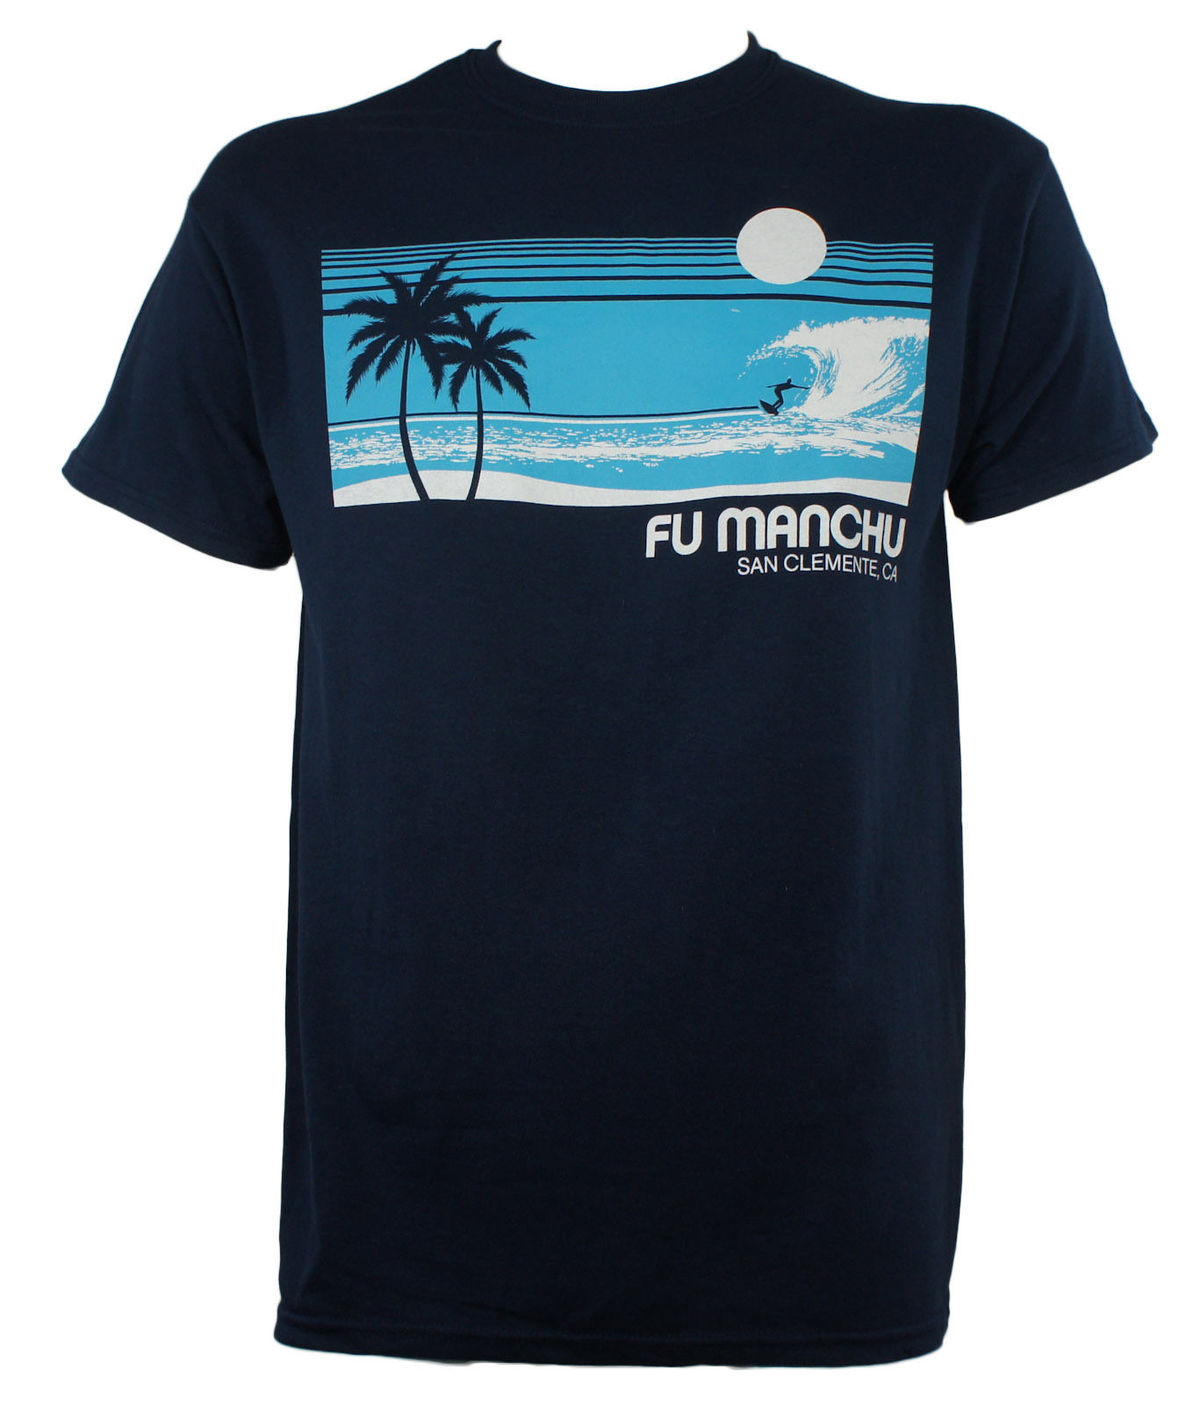 Authentic FU MANCHU Band Surfer San Clemente T-Shirt Stoner Rock NEW Fashion Men T Shirt Text